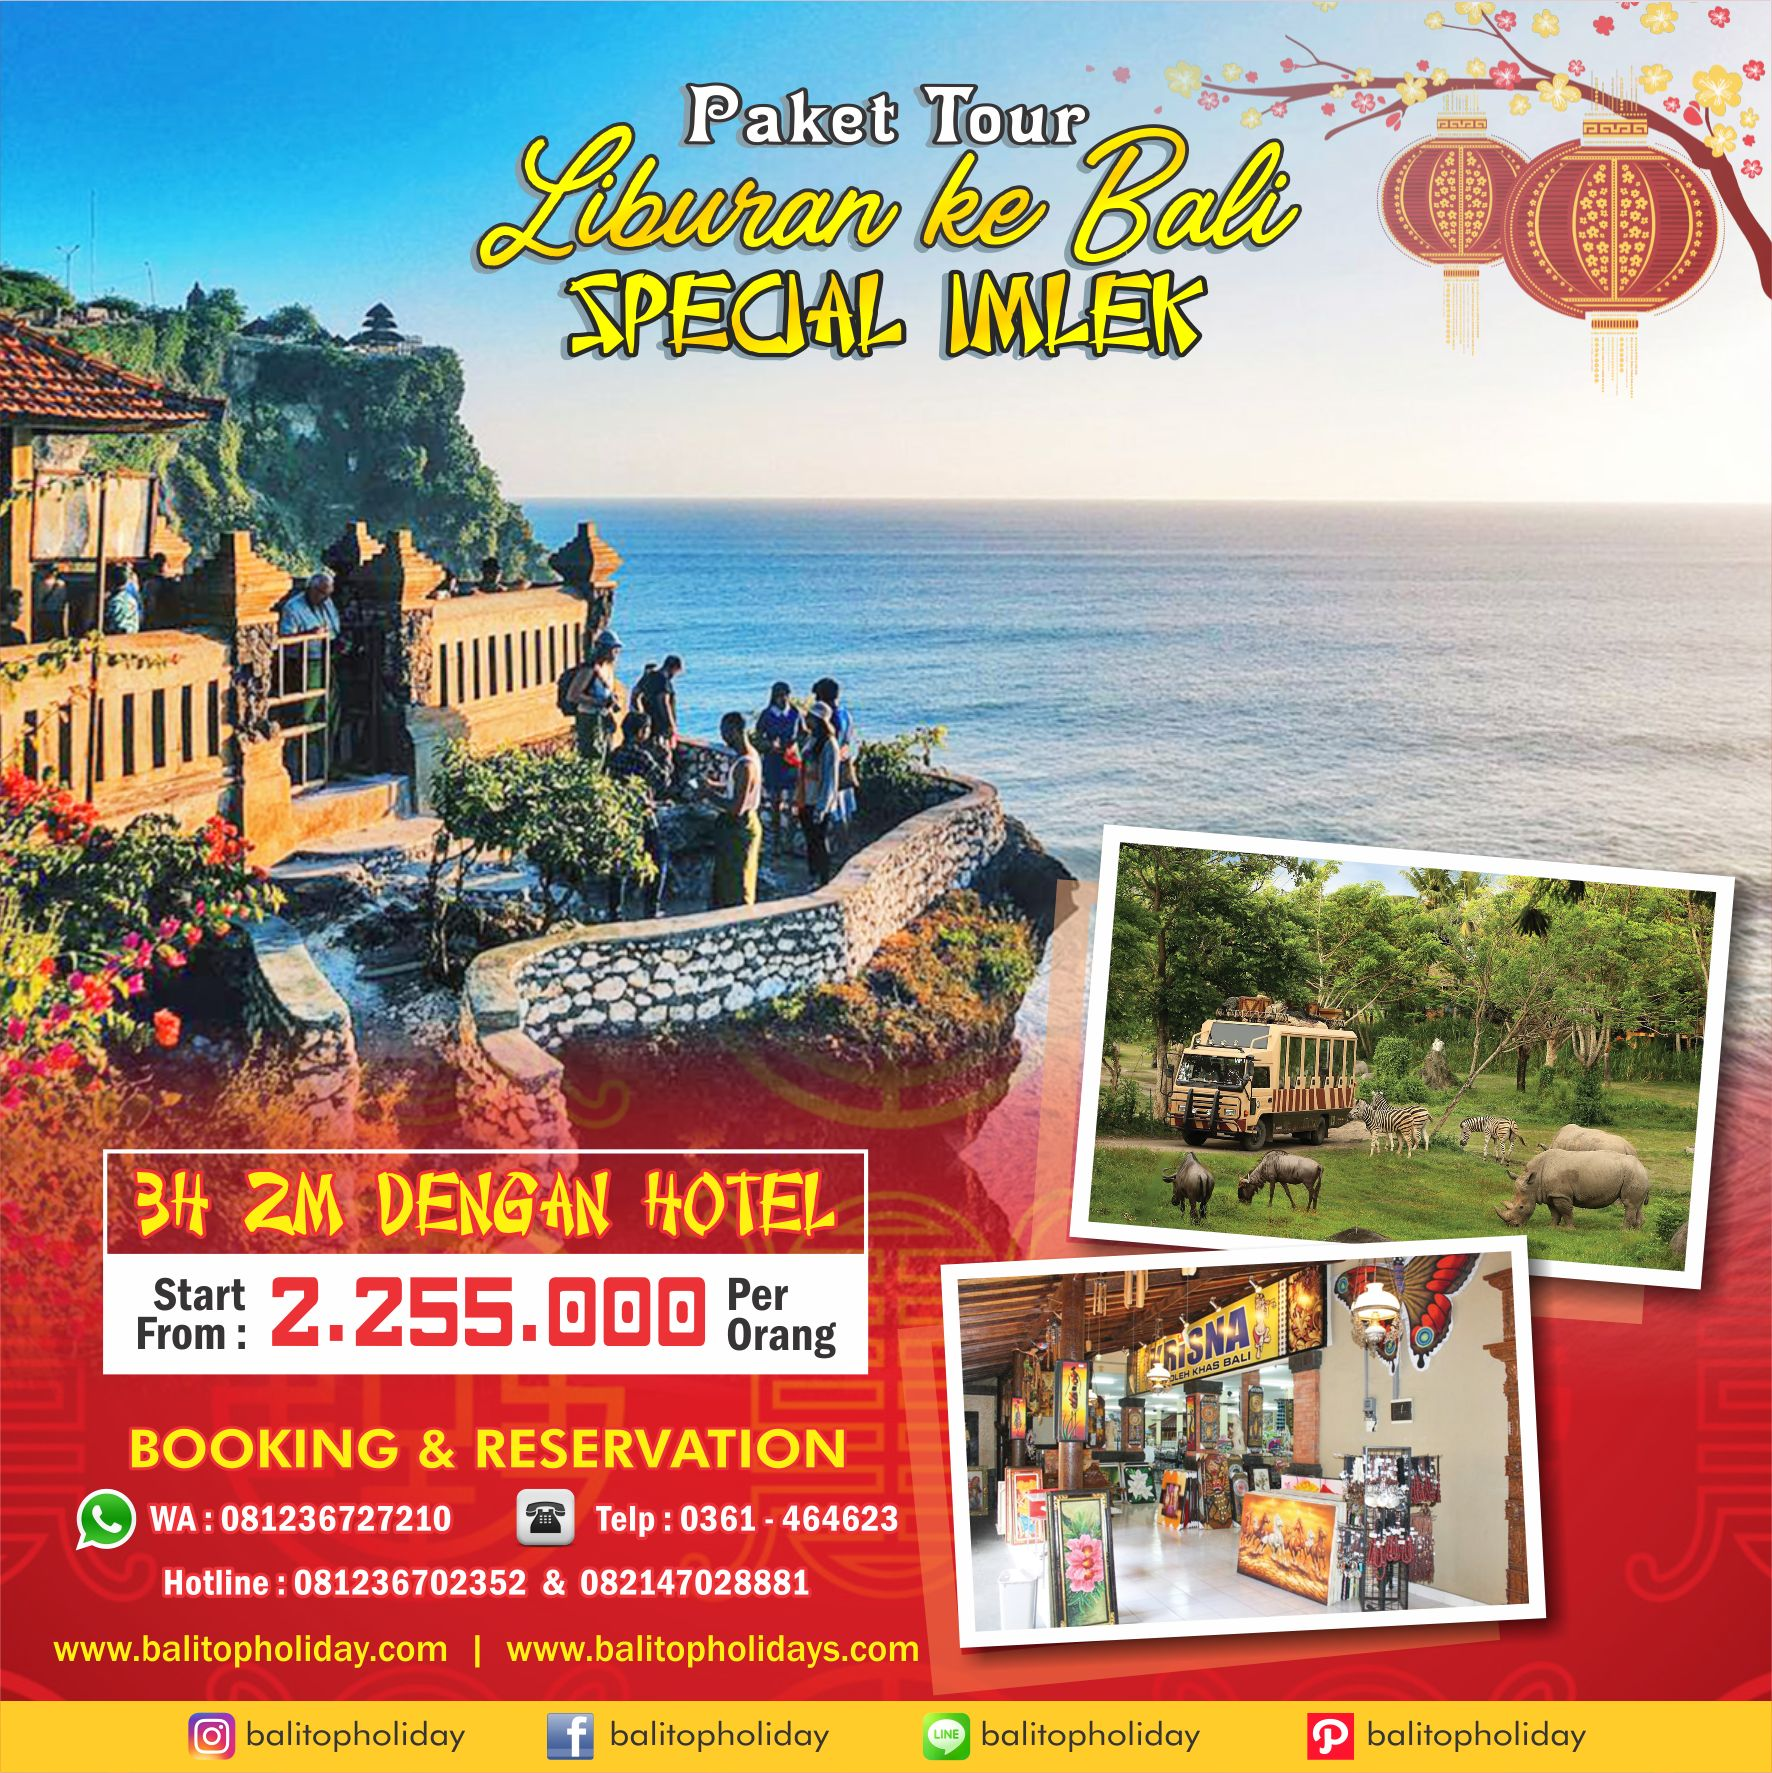 Paket Tour Imlek 3H 2M (Standard) start from